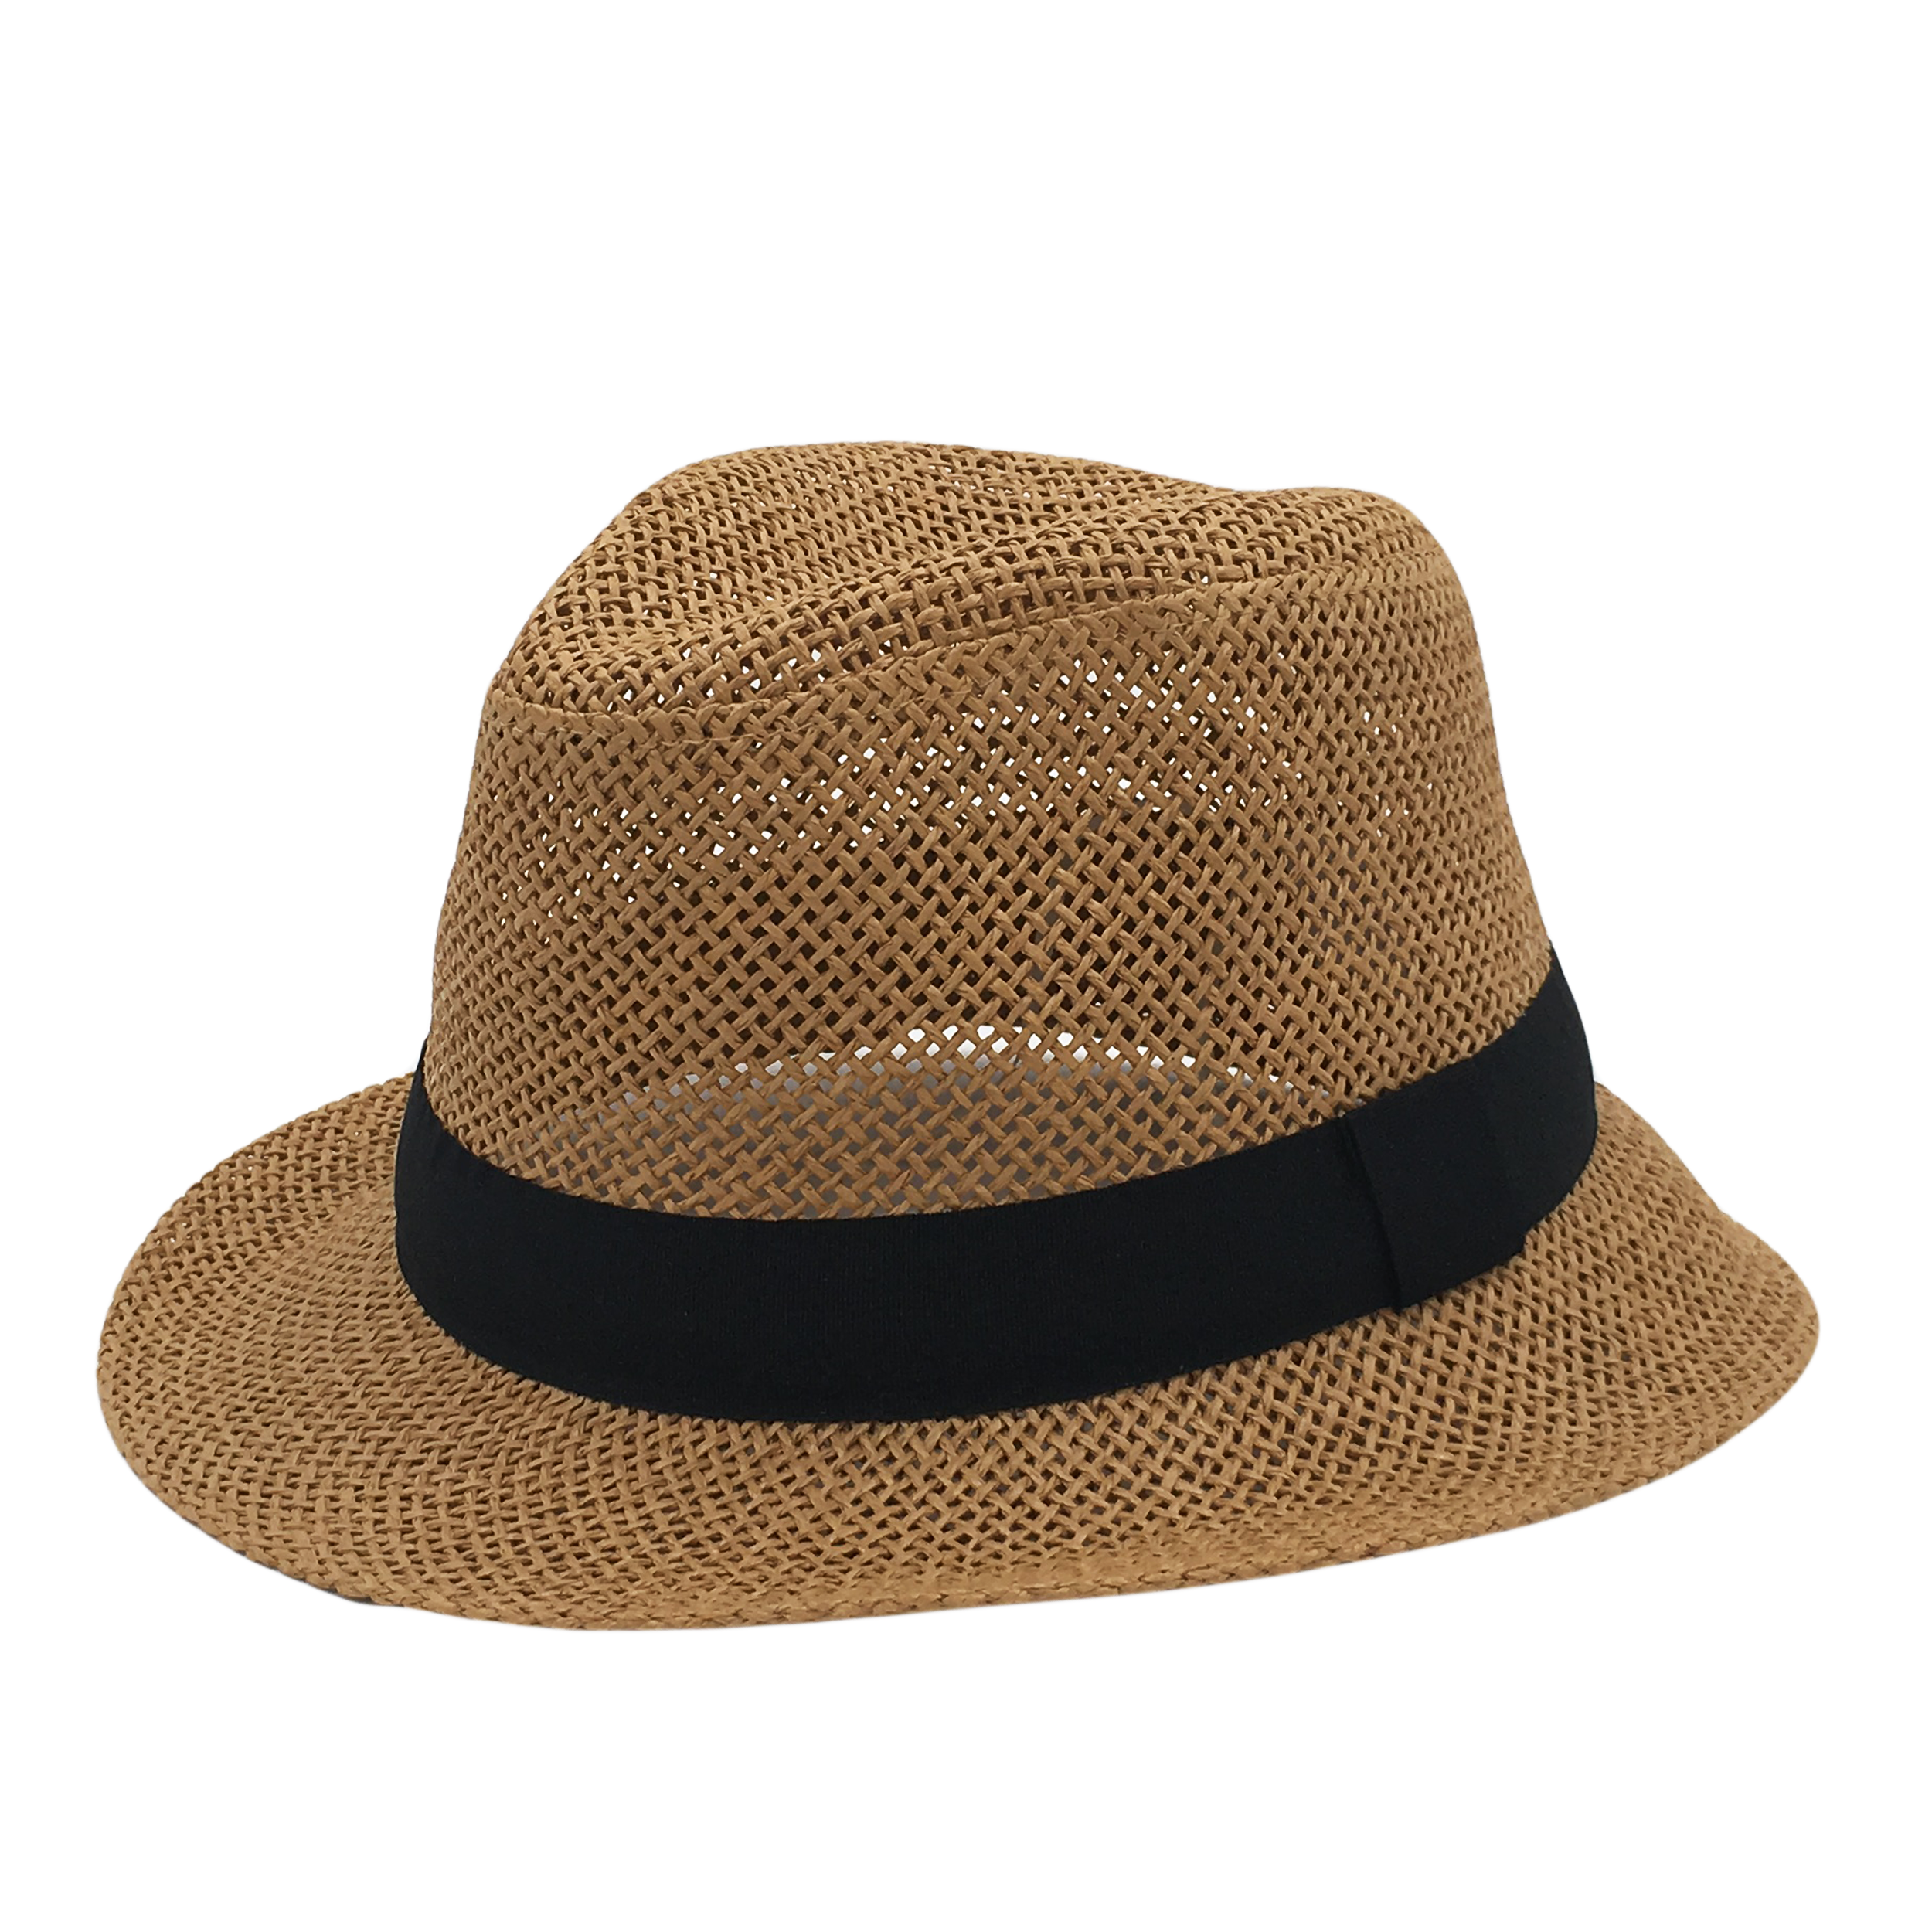 Copy of Copy of Custom Straw Hat